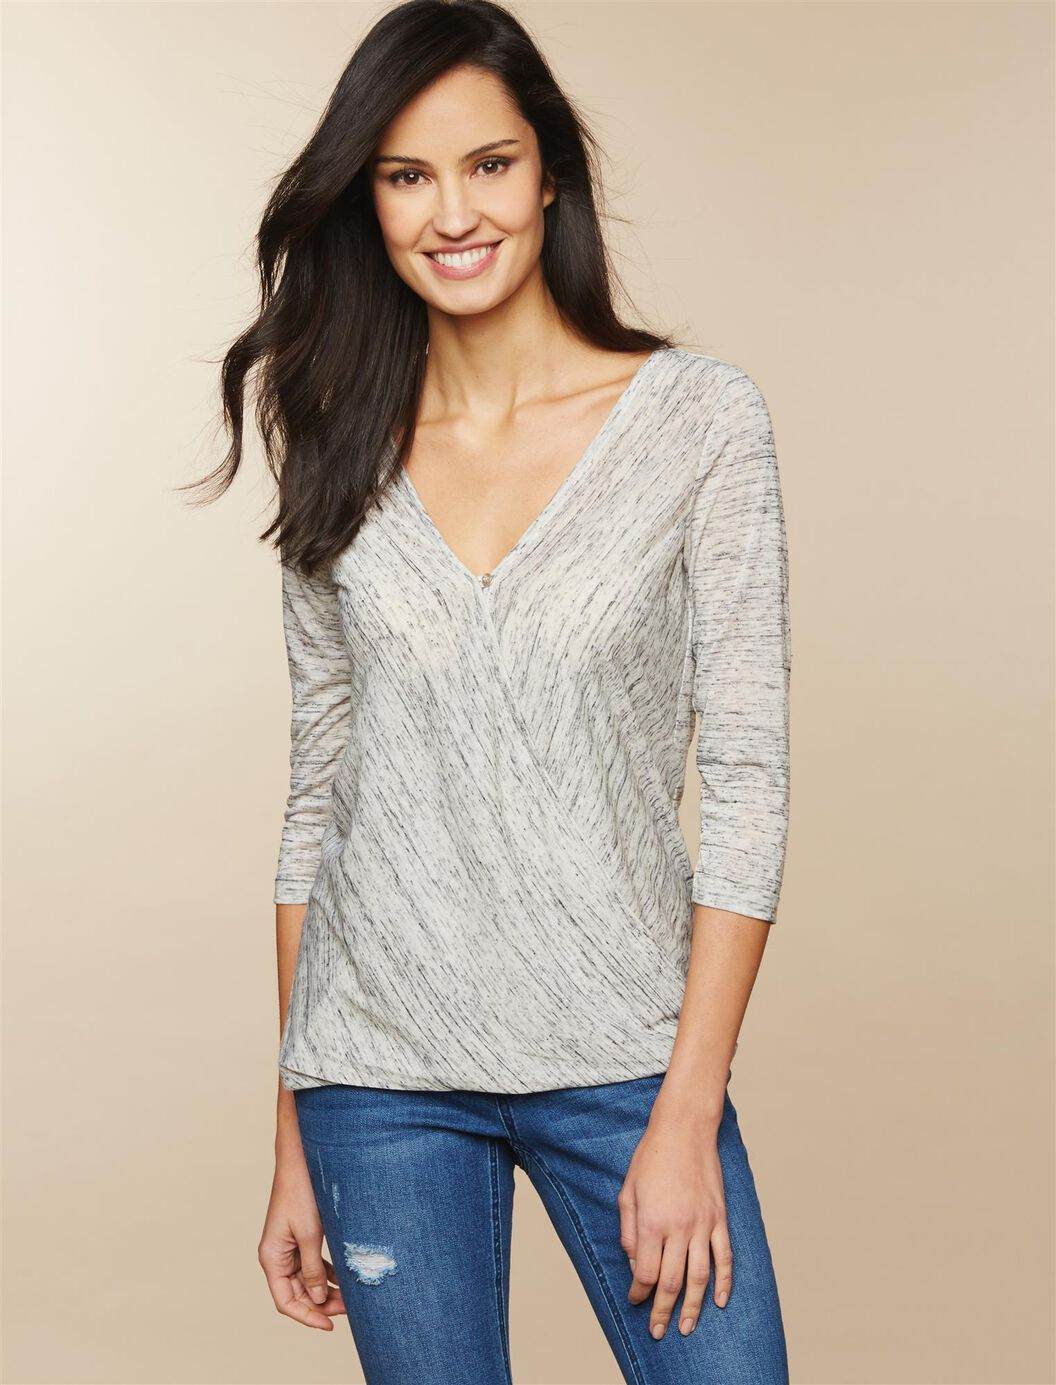 Jessica Simpson Pull Over Wrap Nursing Top at Motherhood Maternity in Victor, NY | Tuggl